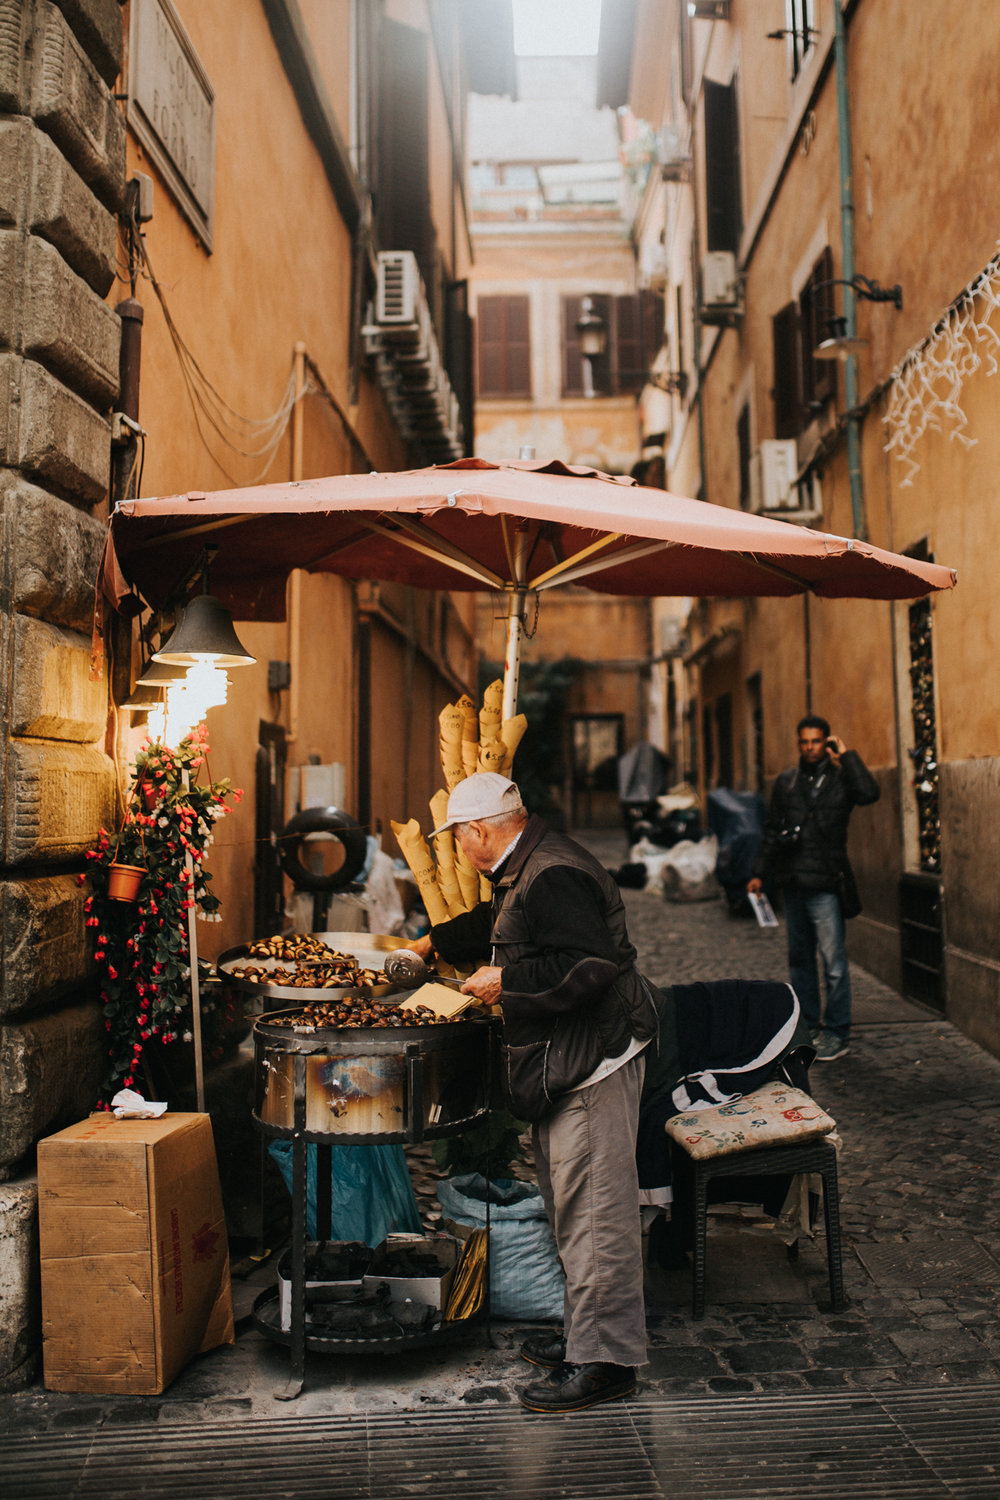 Italy - Rome Travel Photography - Chestnut Roaster